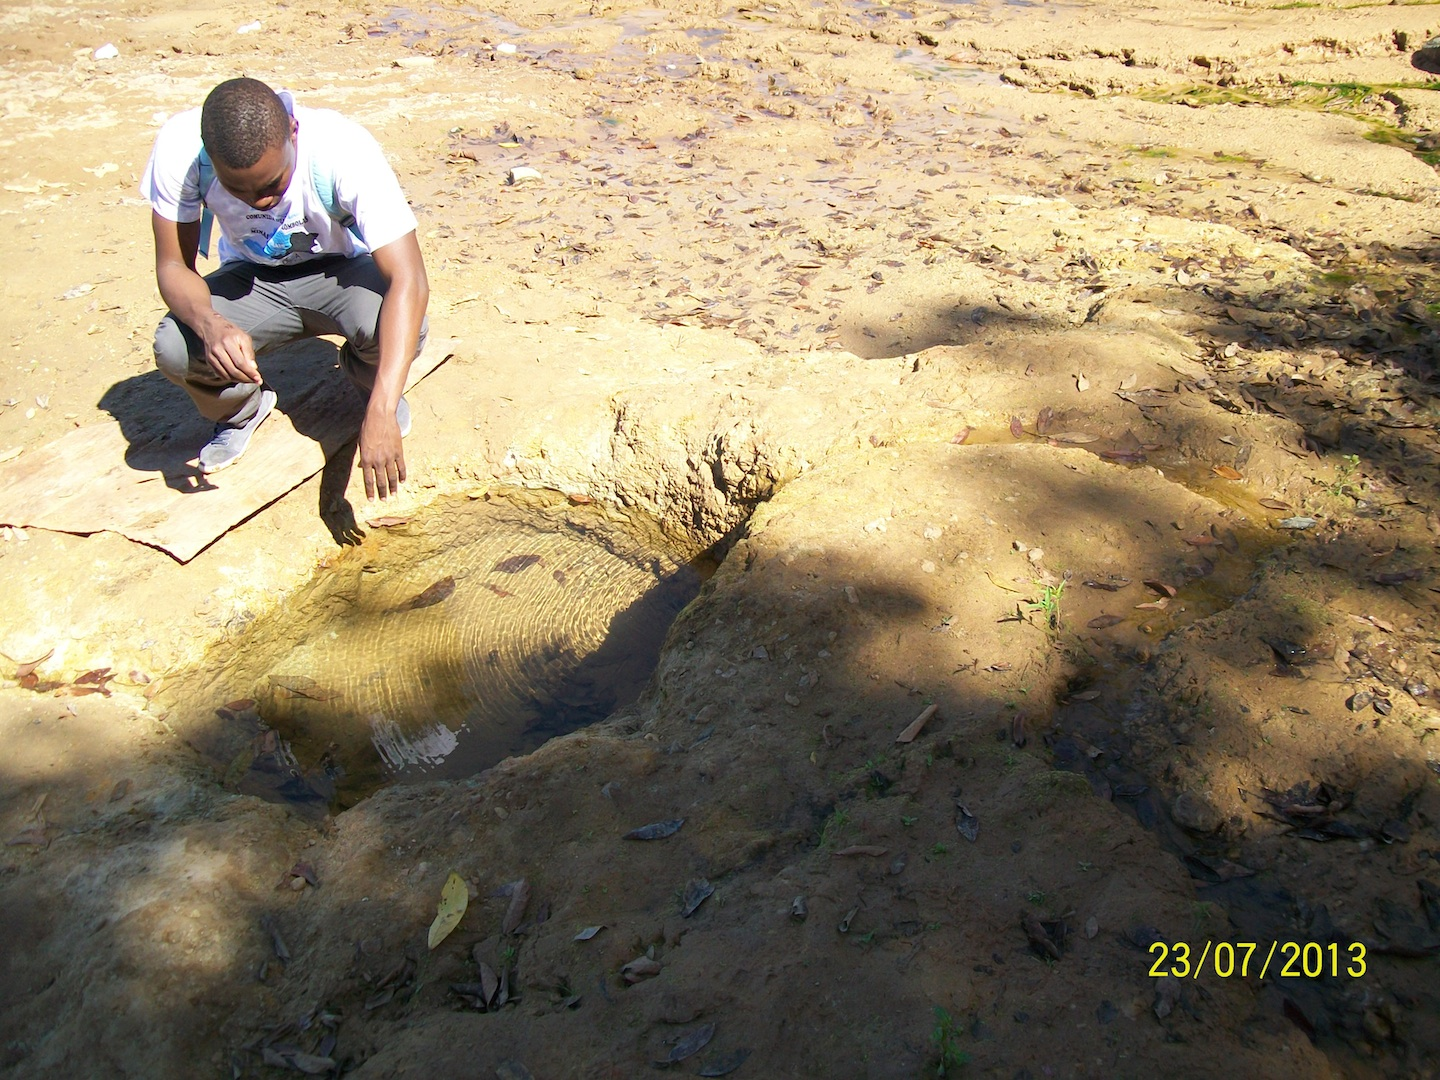 Water well, Lagedo community, São Francisco, MG